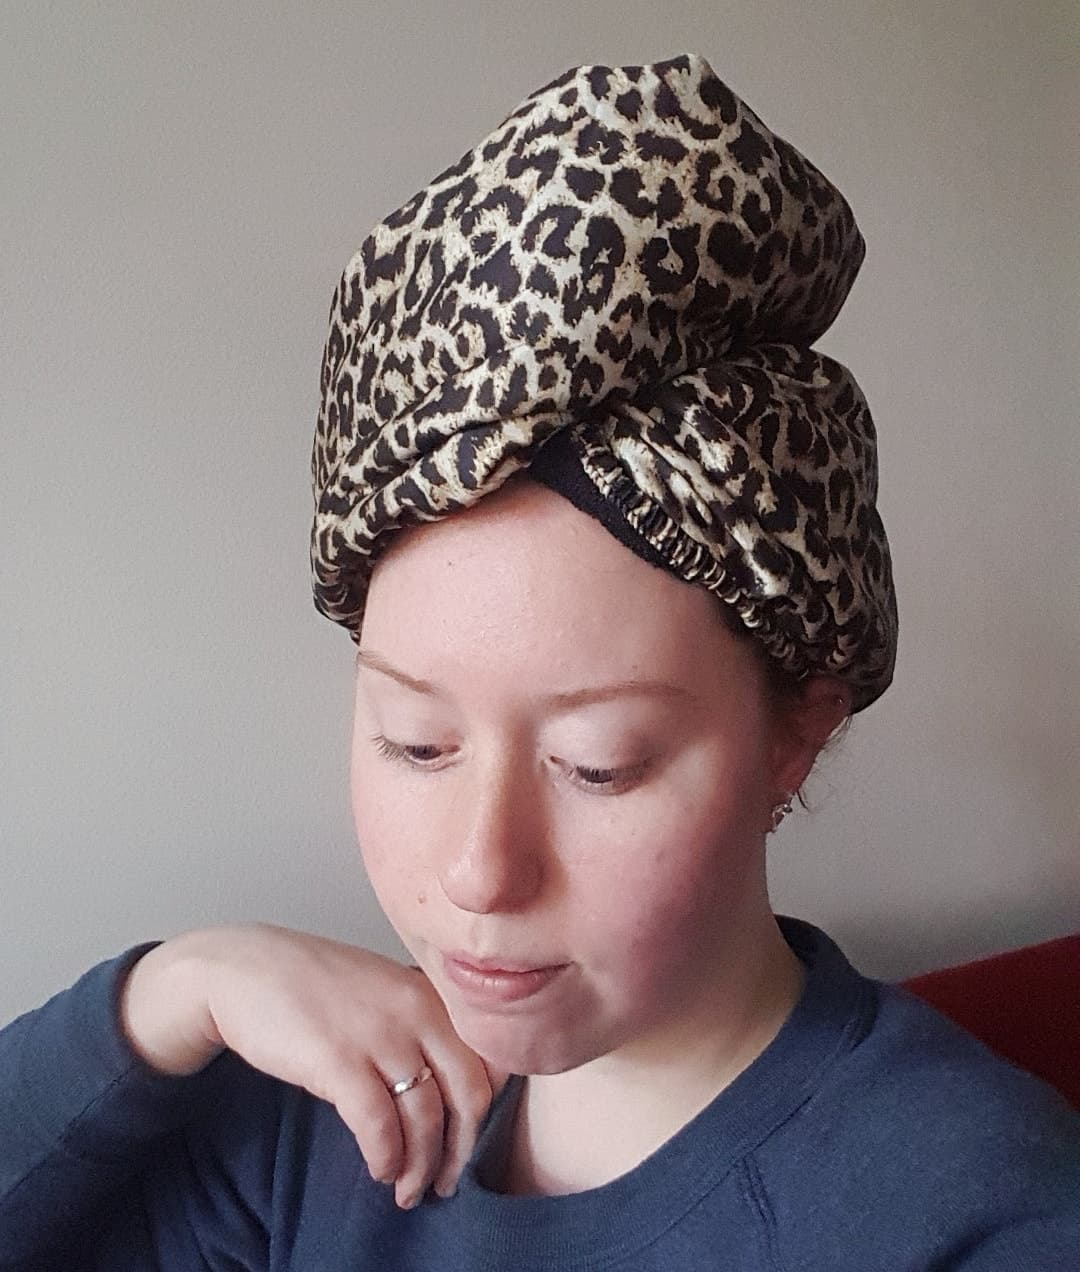 2020 Beauty Shortlist Awards - Judge Favourites Aquis x Poosh Rapid Dry Hair Turban Review